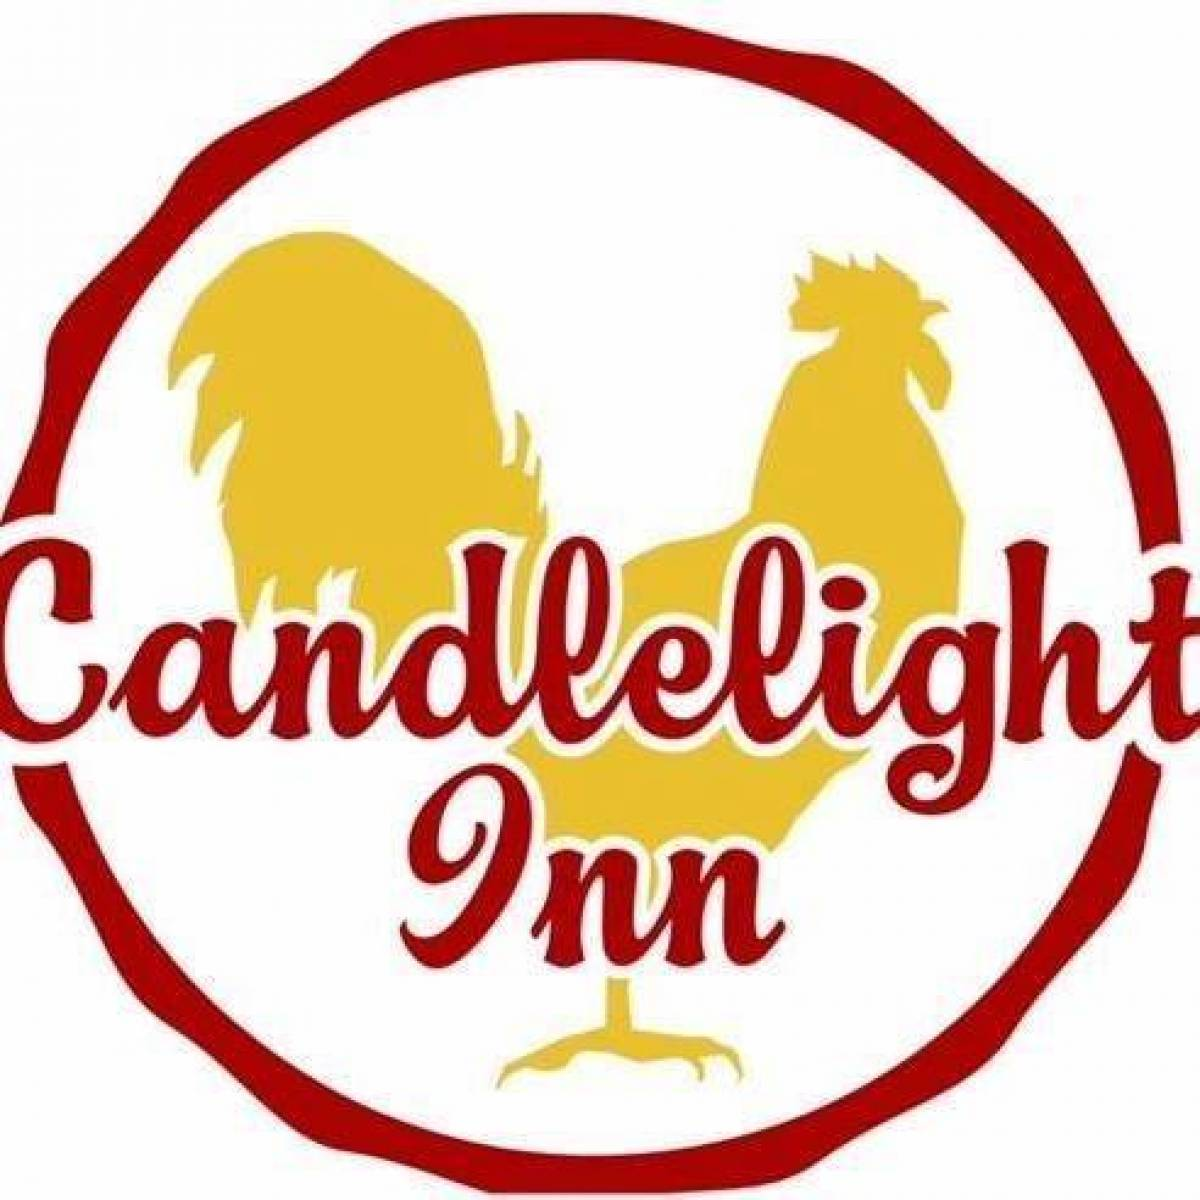 Candlelight Apartments: Candlelight Inn